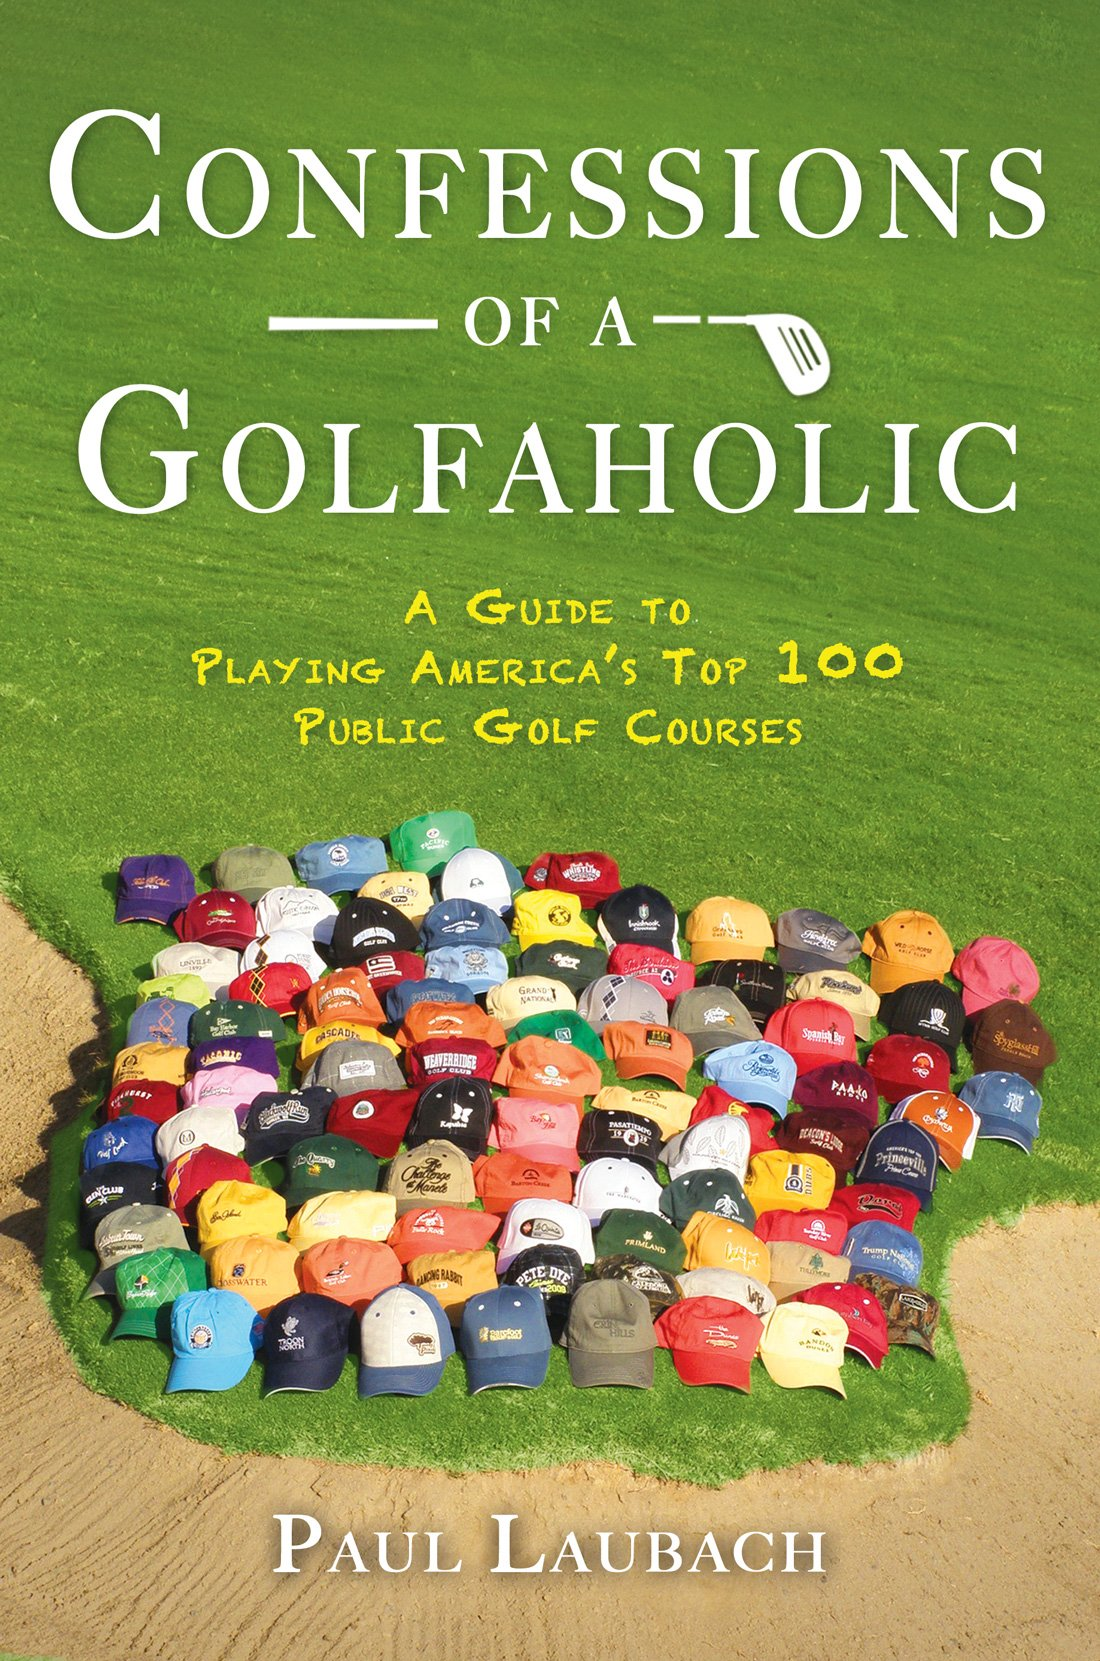 Download Confessions of a Golfaholic: A Guide to Playing America's Top 100 Public Golf Courses PDF